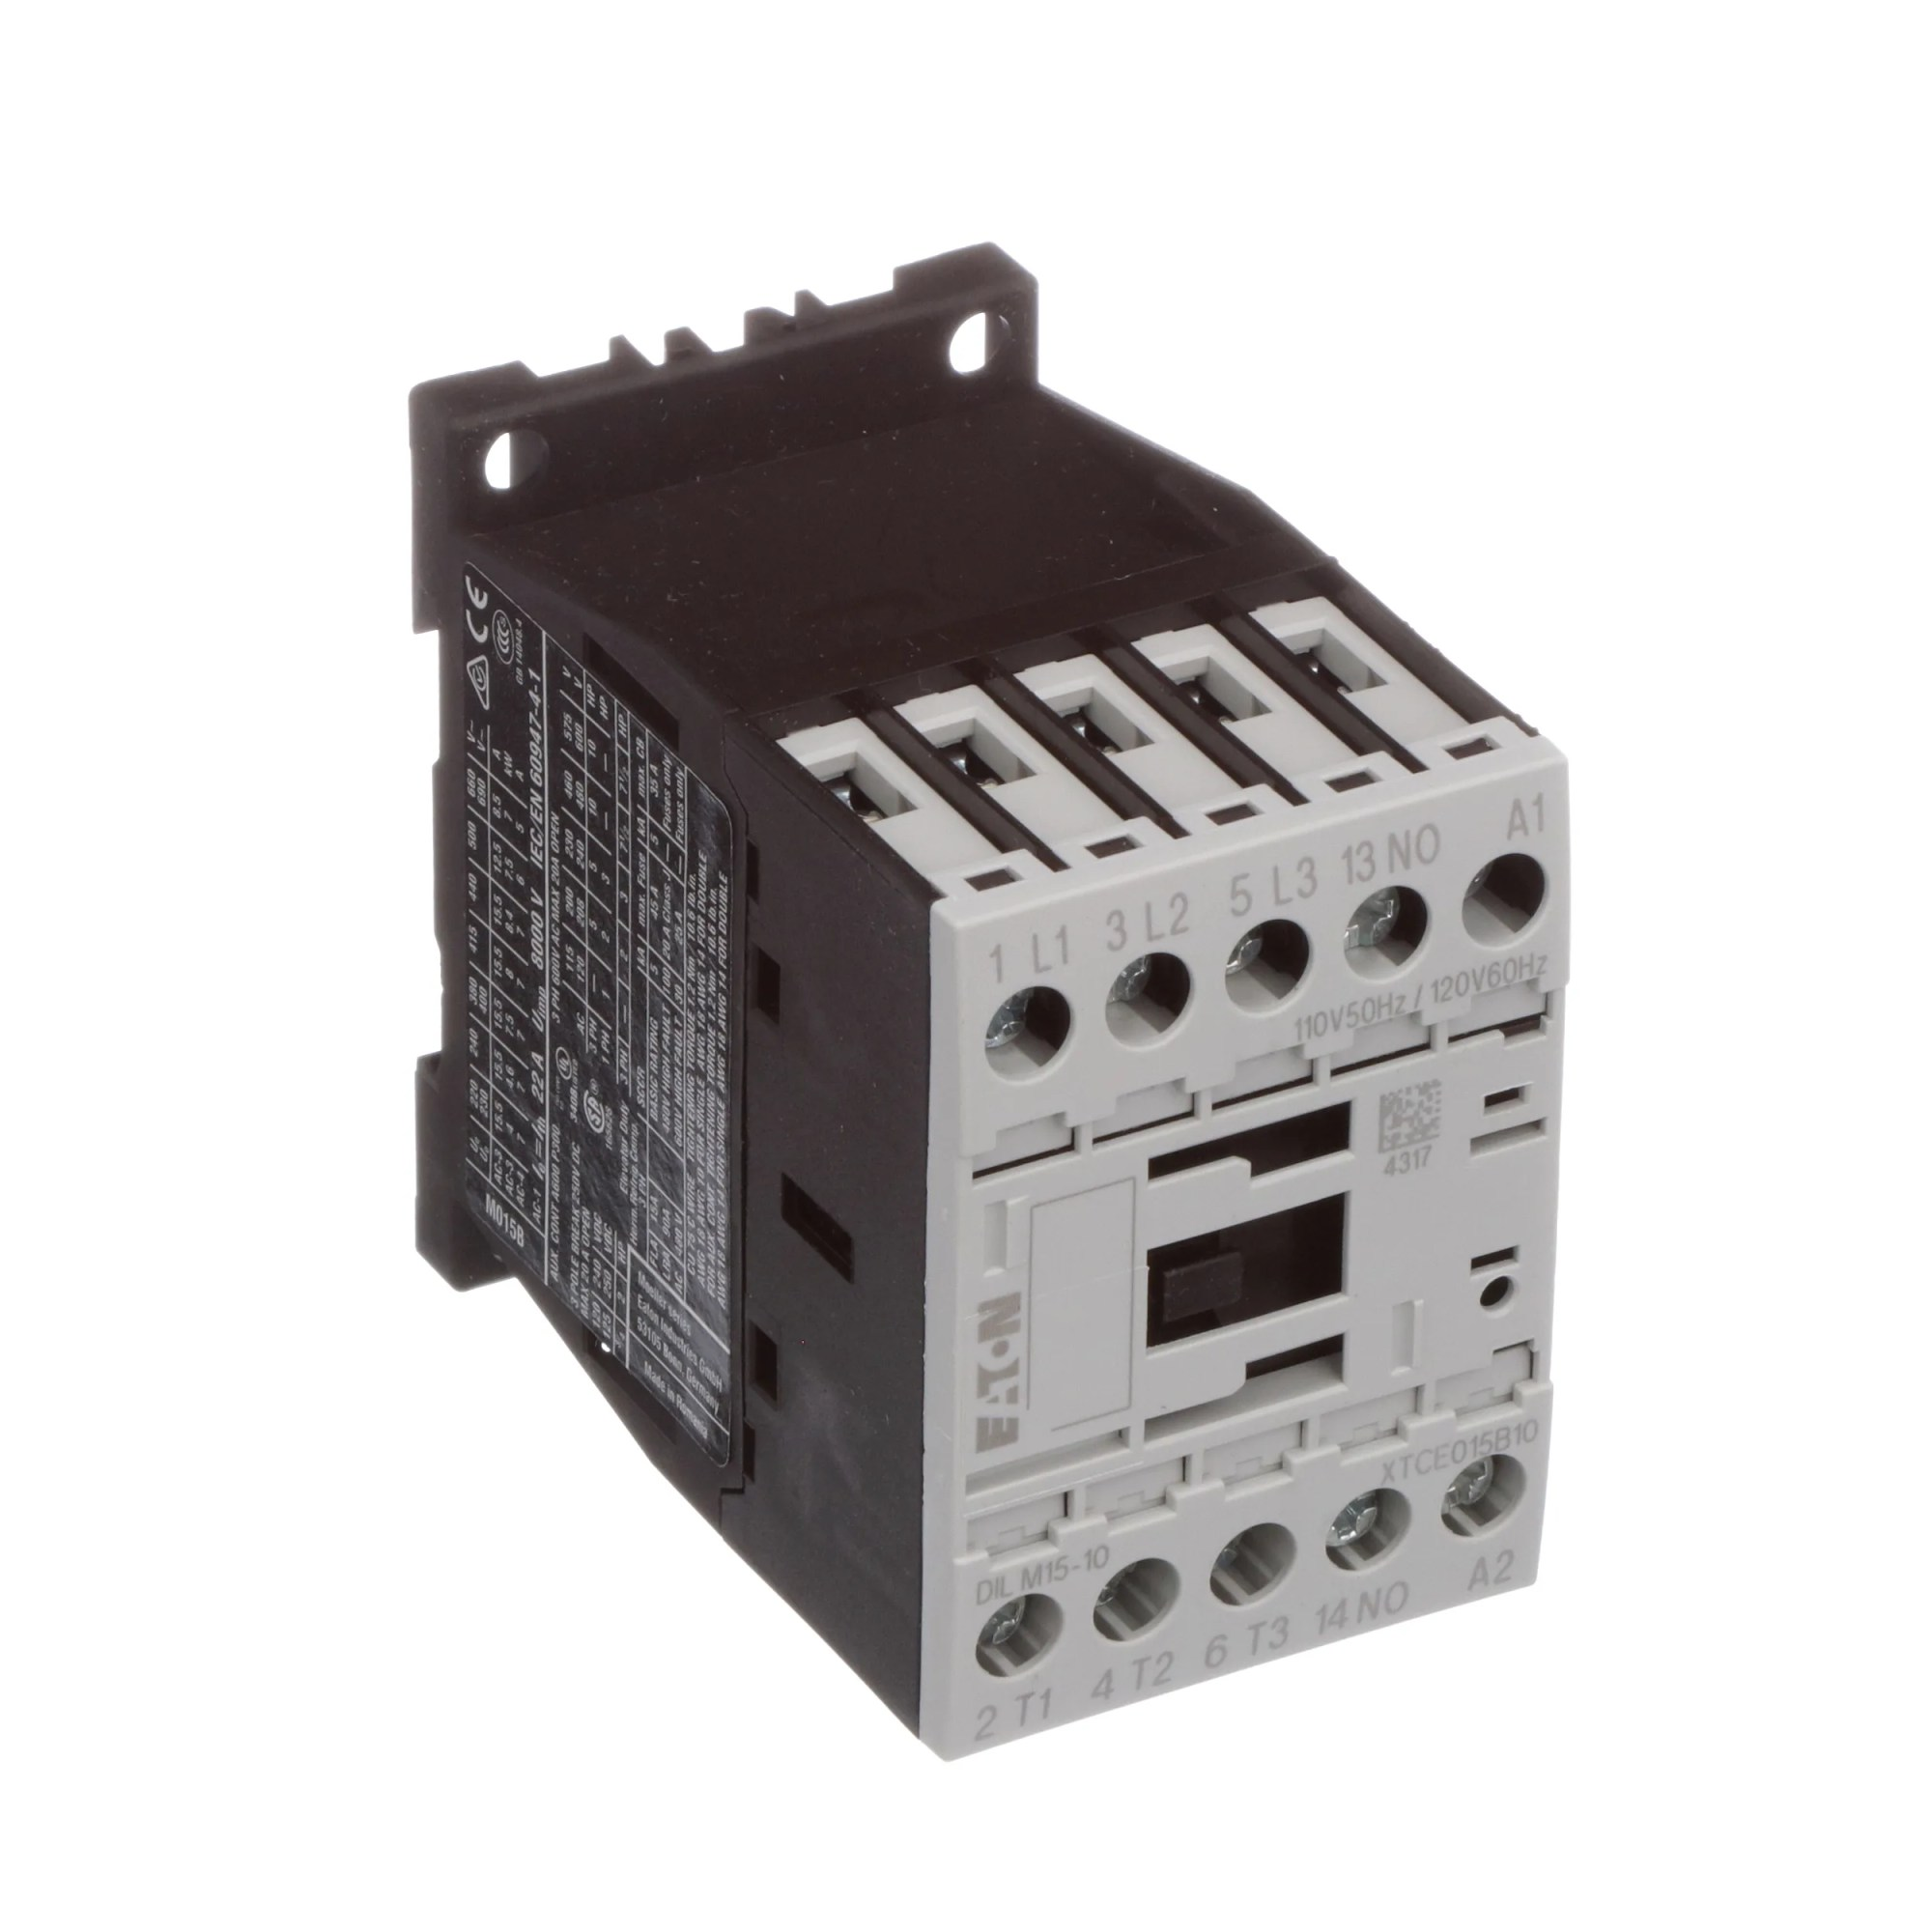 hight resolution of eaton cutler hammer xtce015b10a contactor iec 3 pole fnvr 15a b frame 1no 110v 50hz 120v 60hz coil allied electronics automation